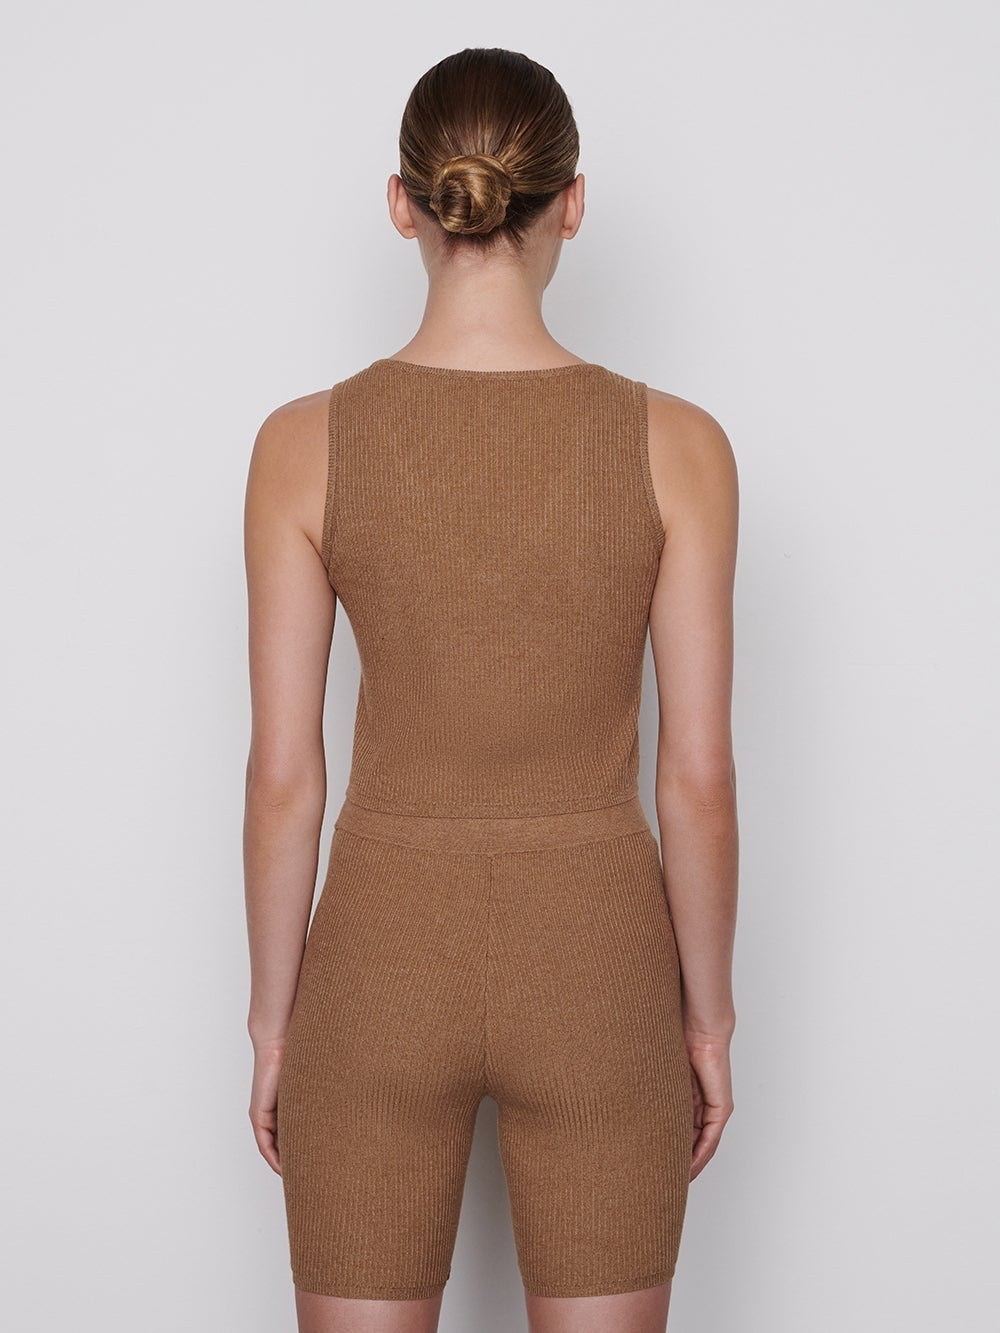 sweater back view